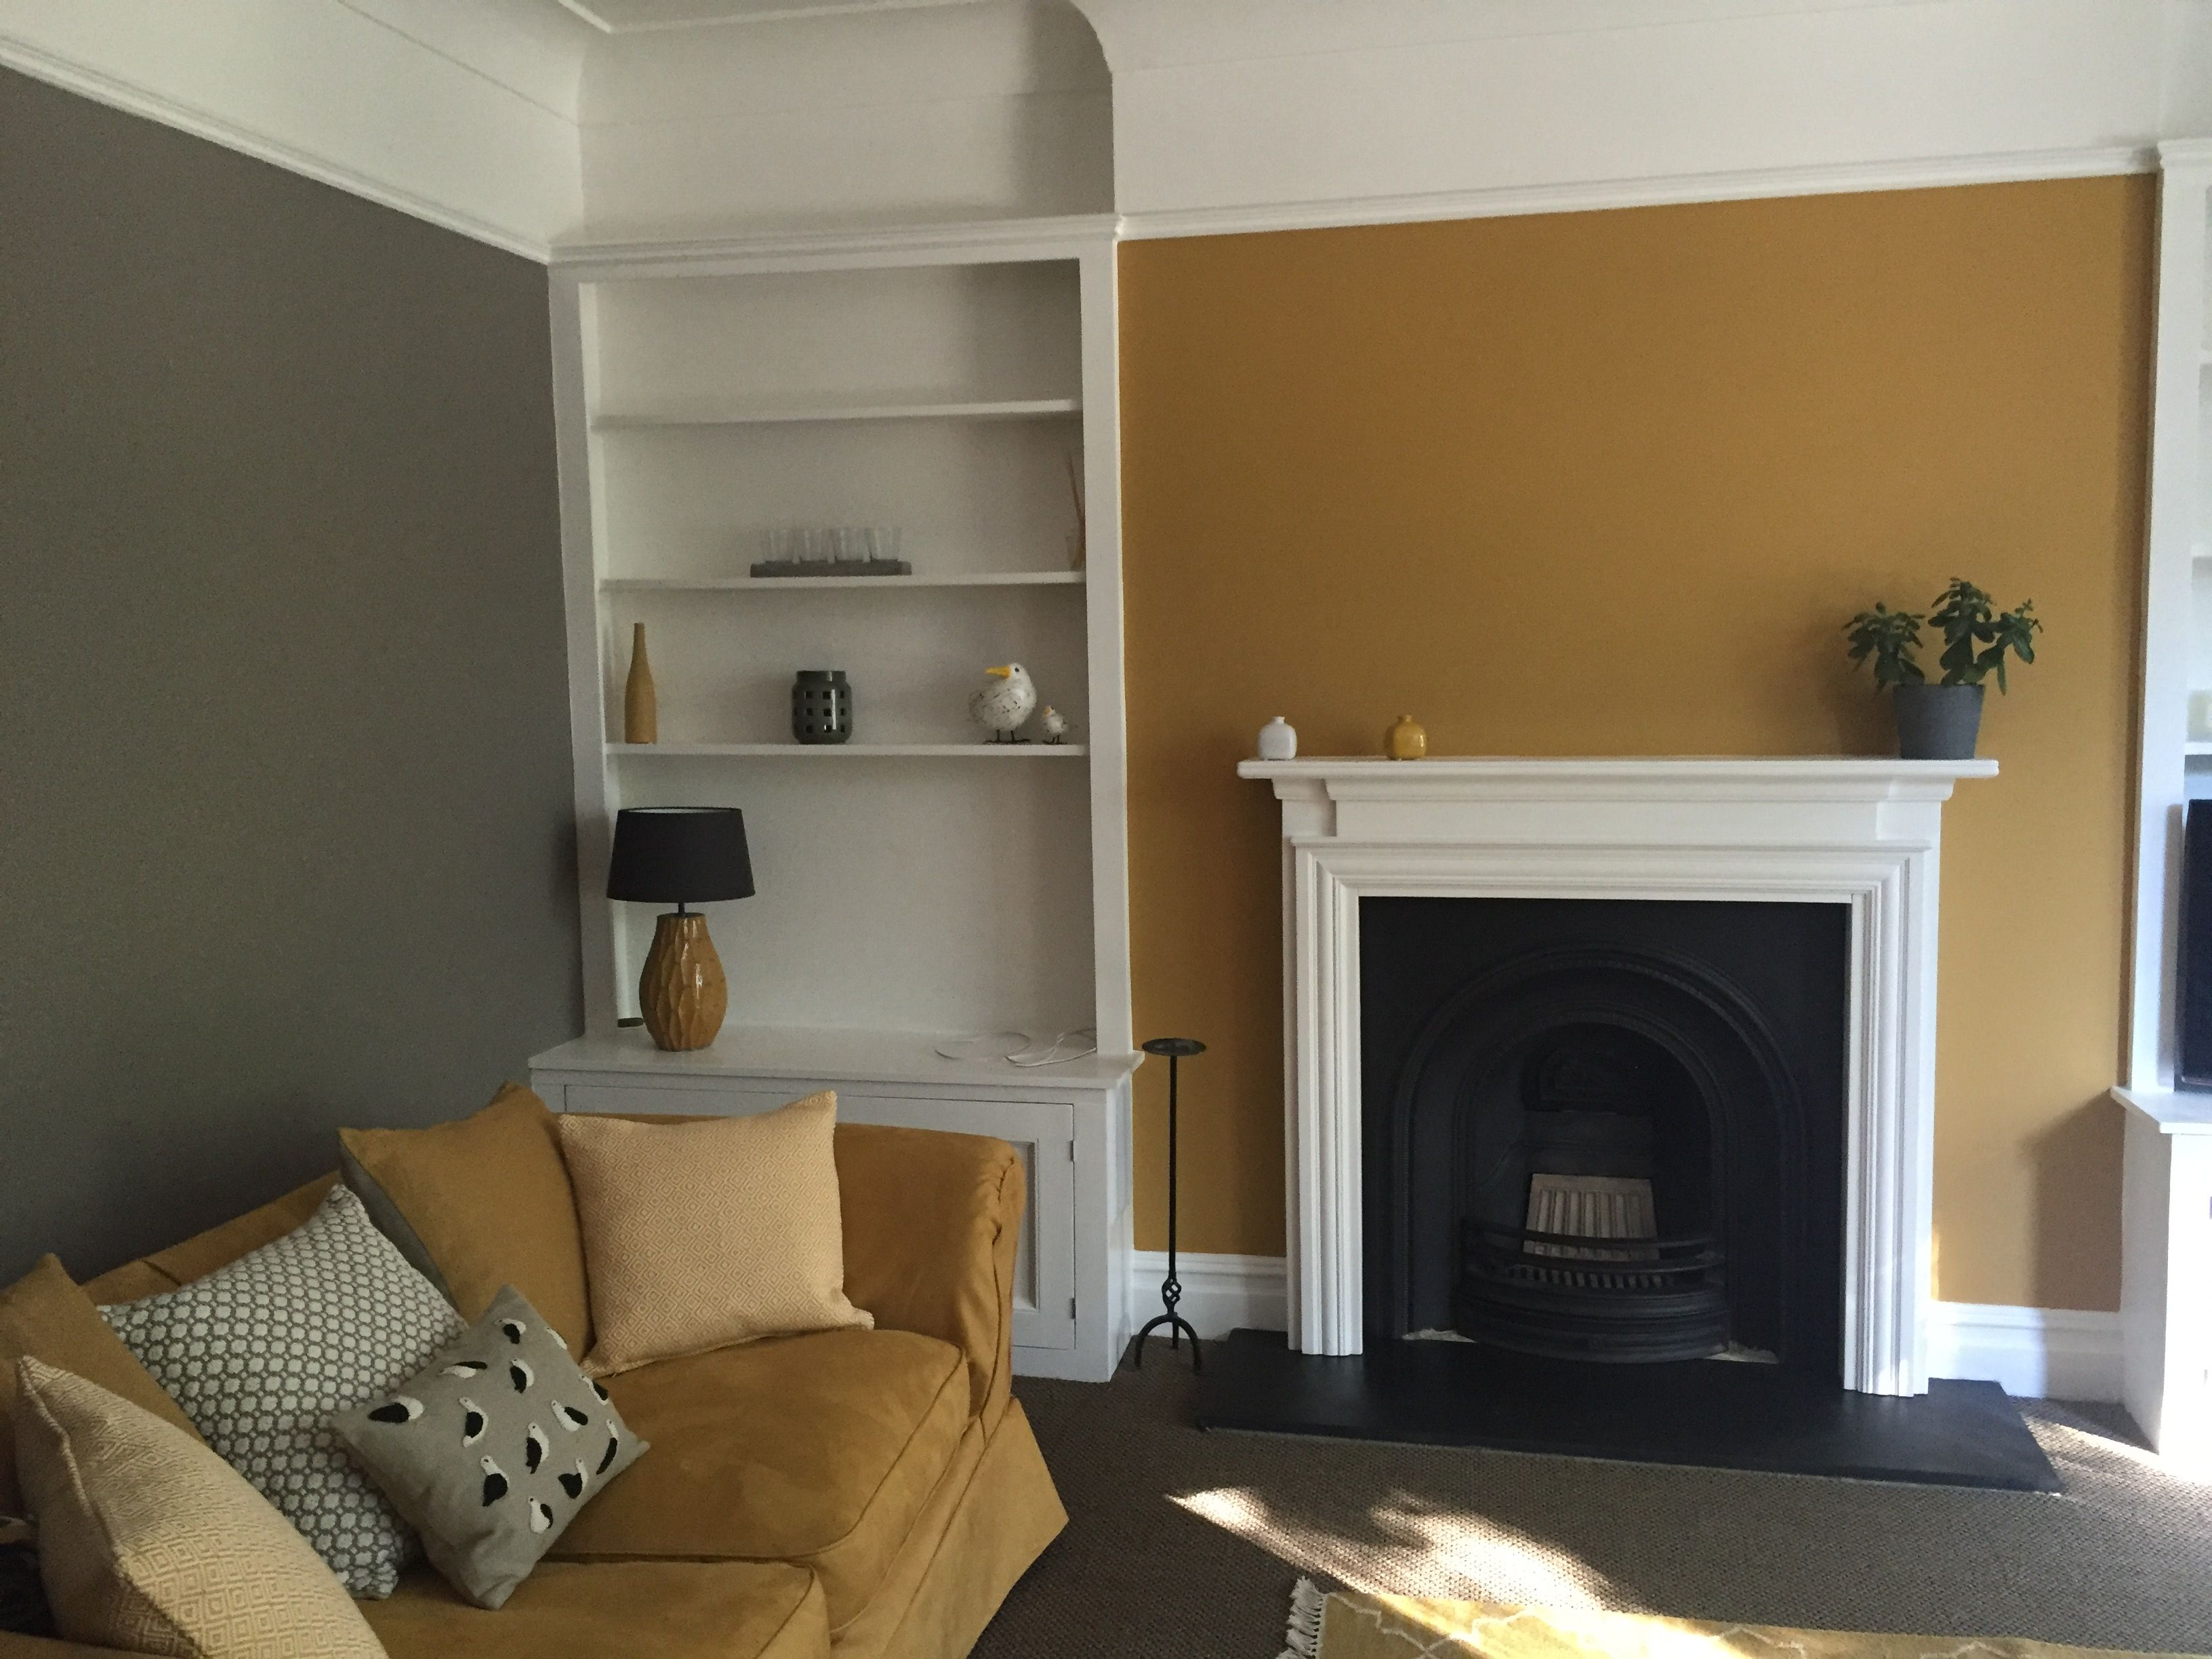 farrow and ball perfect colour combo charleston grey and india yellow very happy with our. Black Bedroom Furniture Sets. Home Design Ideas